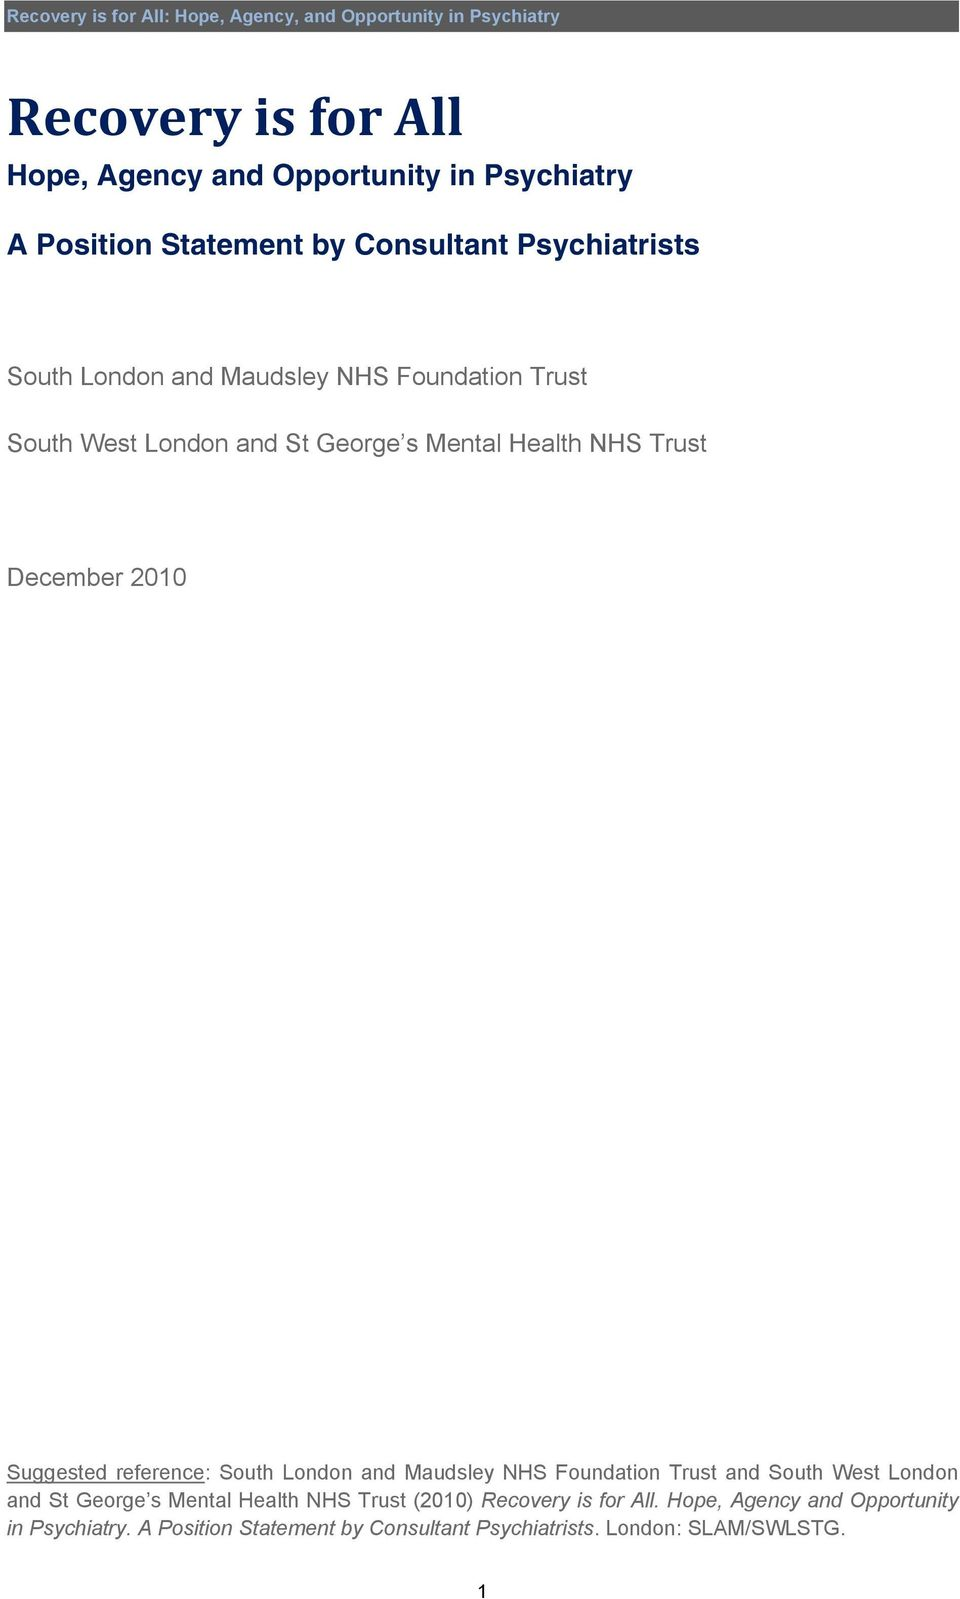 South London and Maudsley NHS Foundation Trust and South West London and St George s Mental Health NHS Trust (2010) Recovery